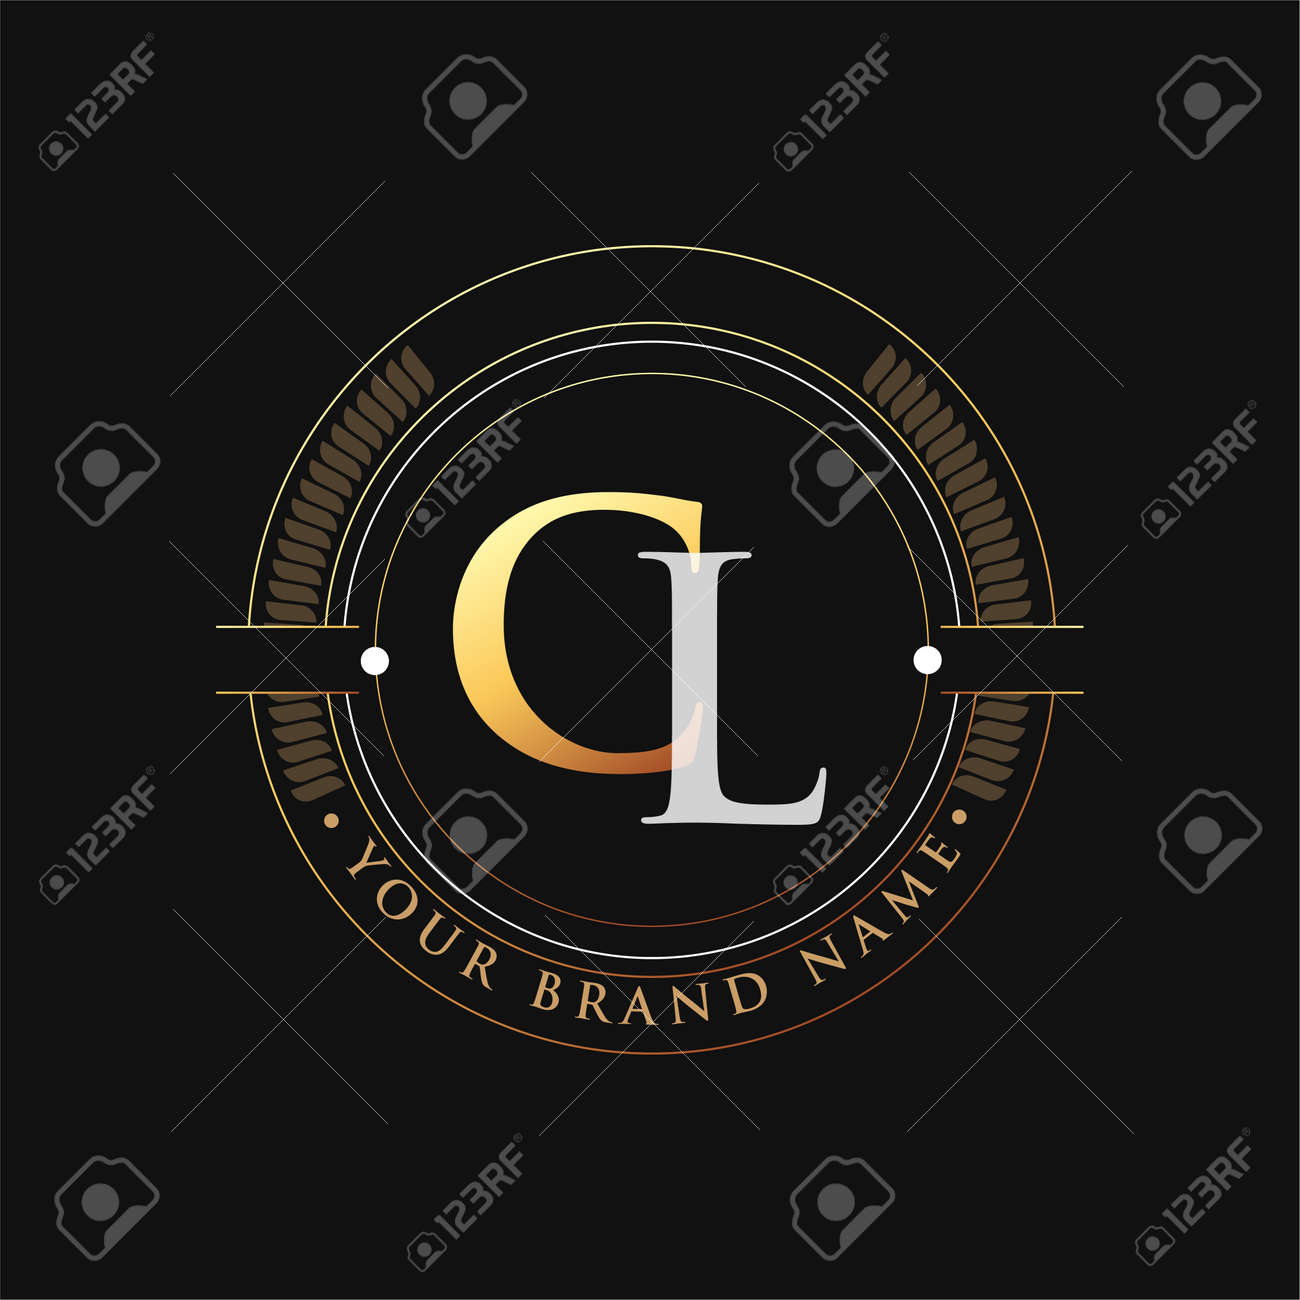 initial letter logo CL gold and white color, with stamp and circle object, Vector logo design template elements for your business or company identity. - 164065849